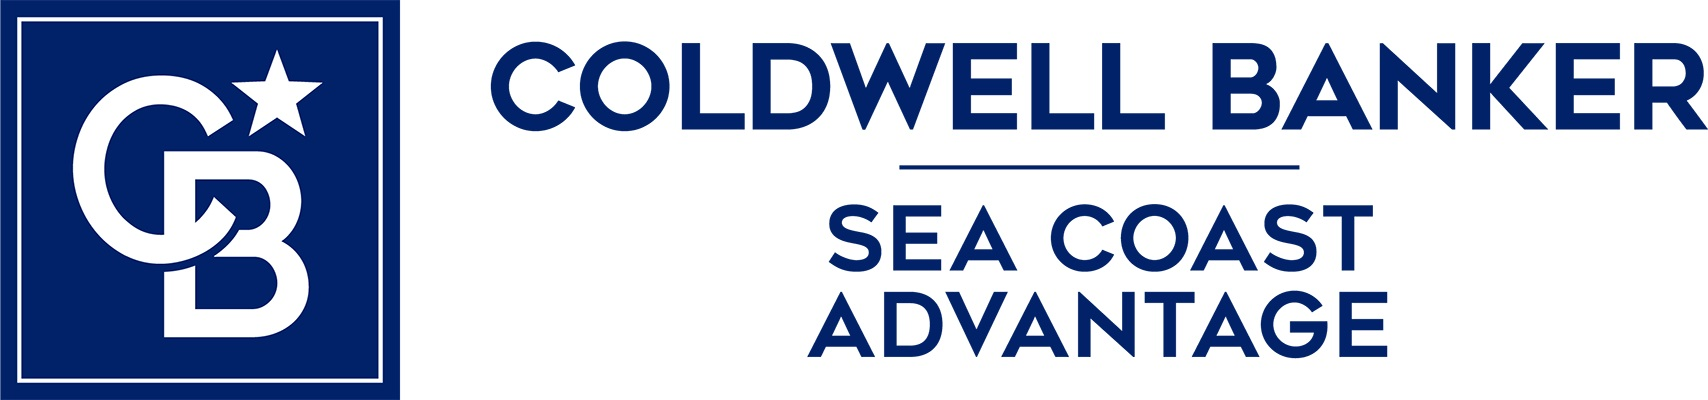 Mary Ann McCarthy - Coldwell Banker Sea Coast Advantage Realty Logo